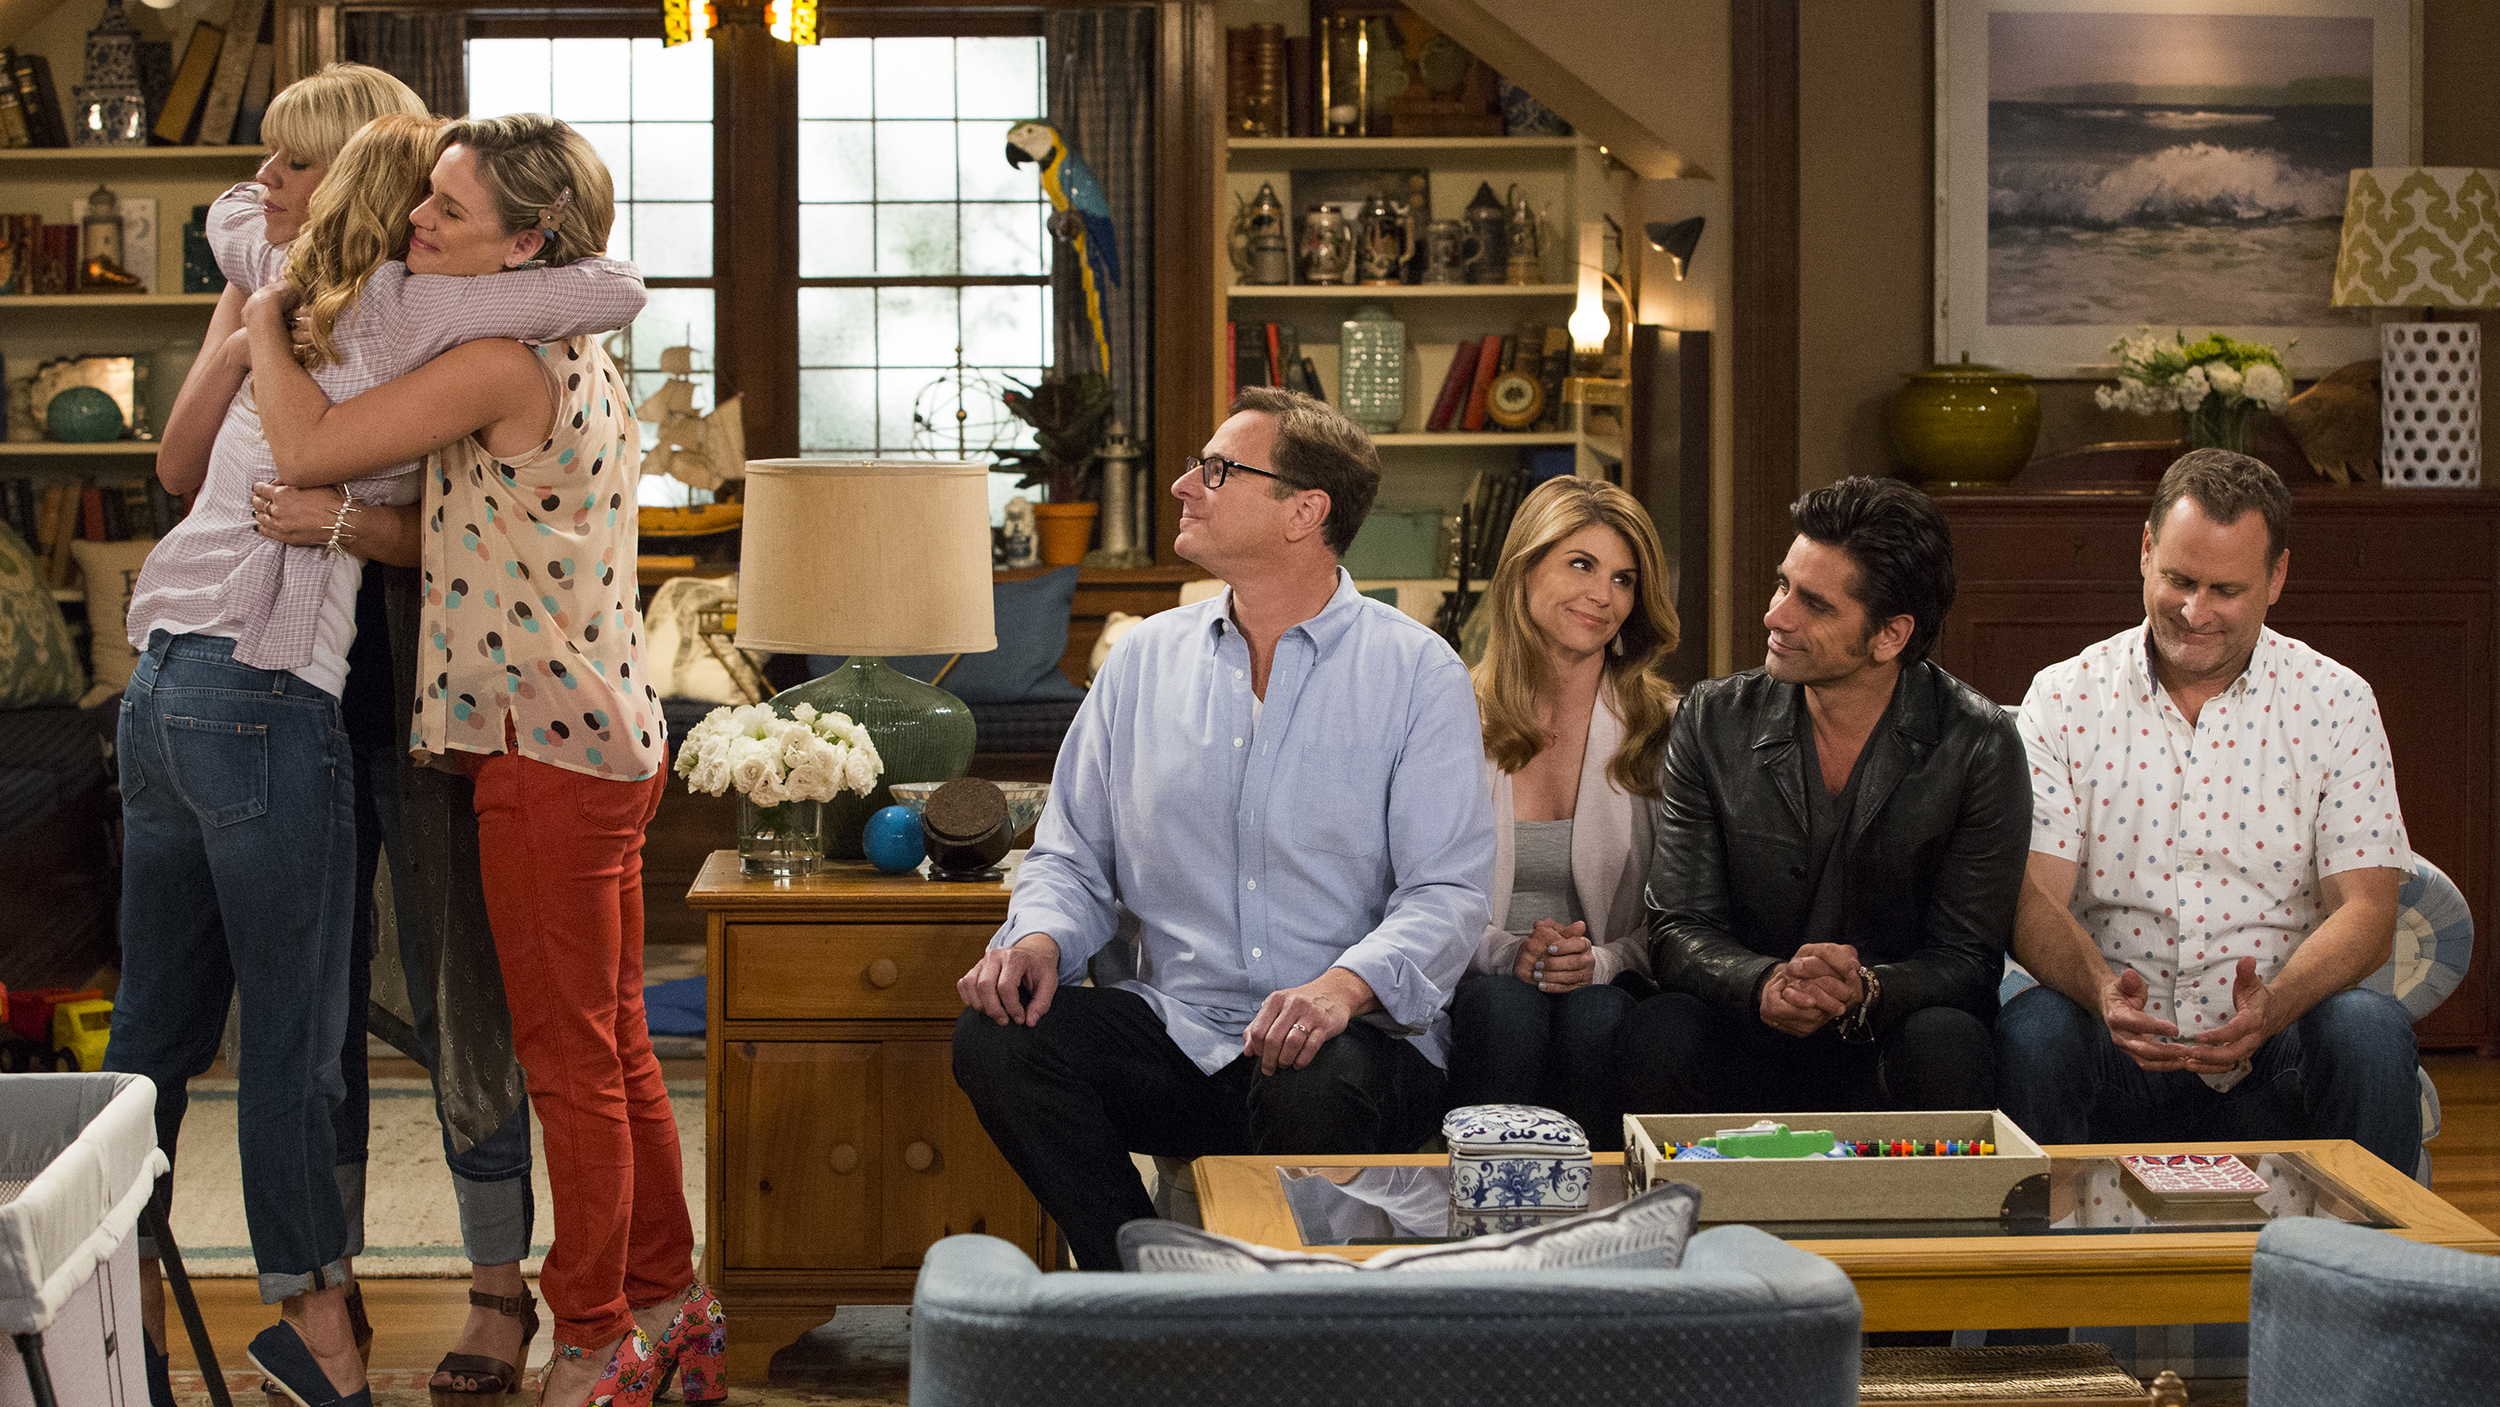 fuller house' will return to netflix for second season - today